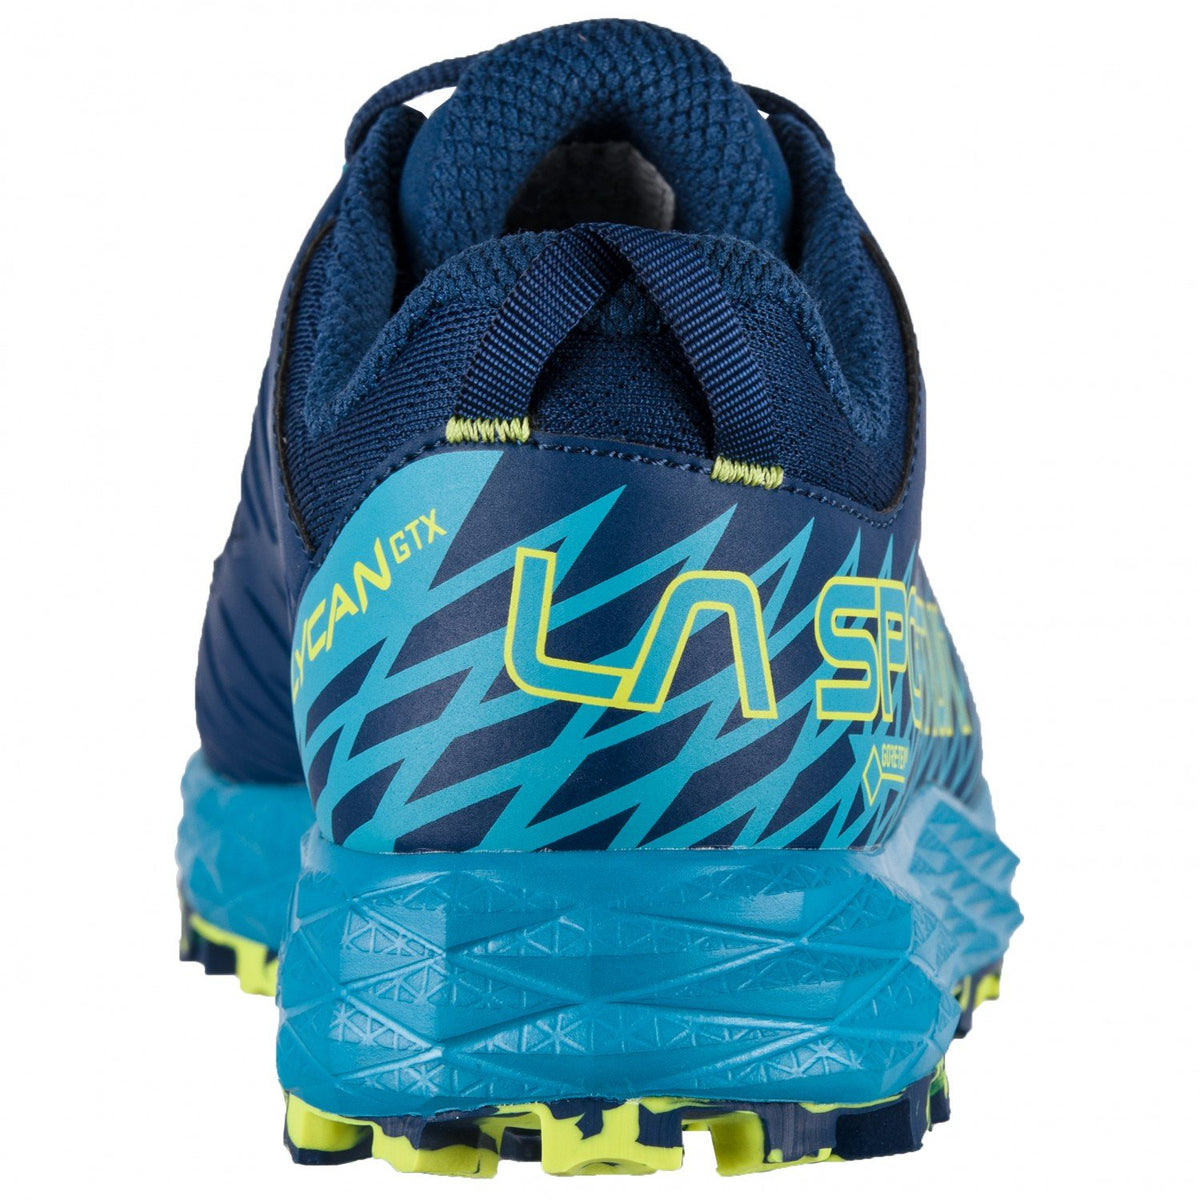 La Sportiva Lycan GTX trail shoe, view of the heel